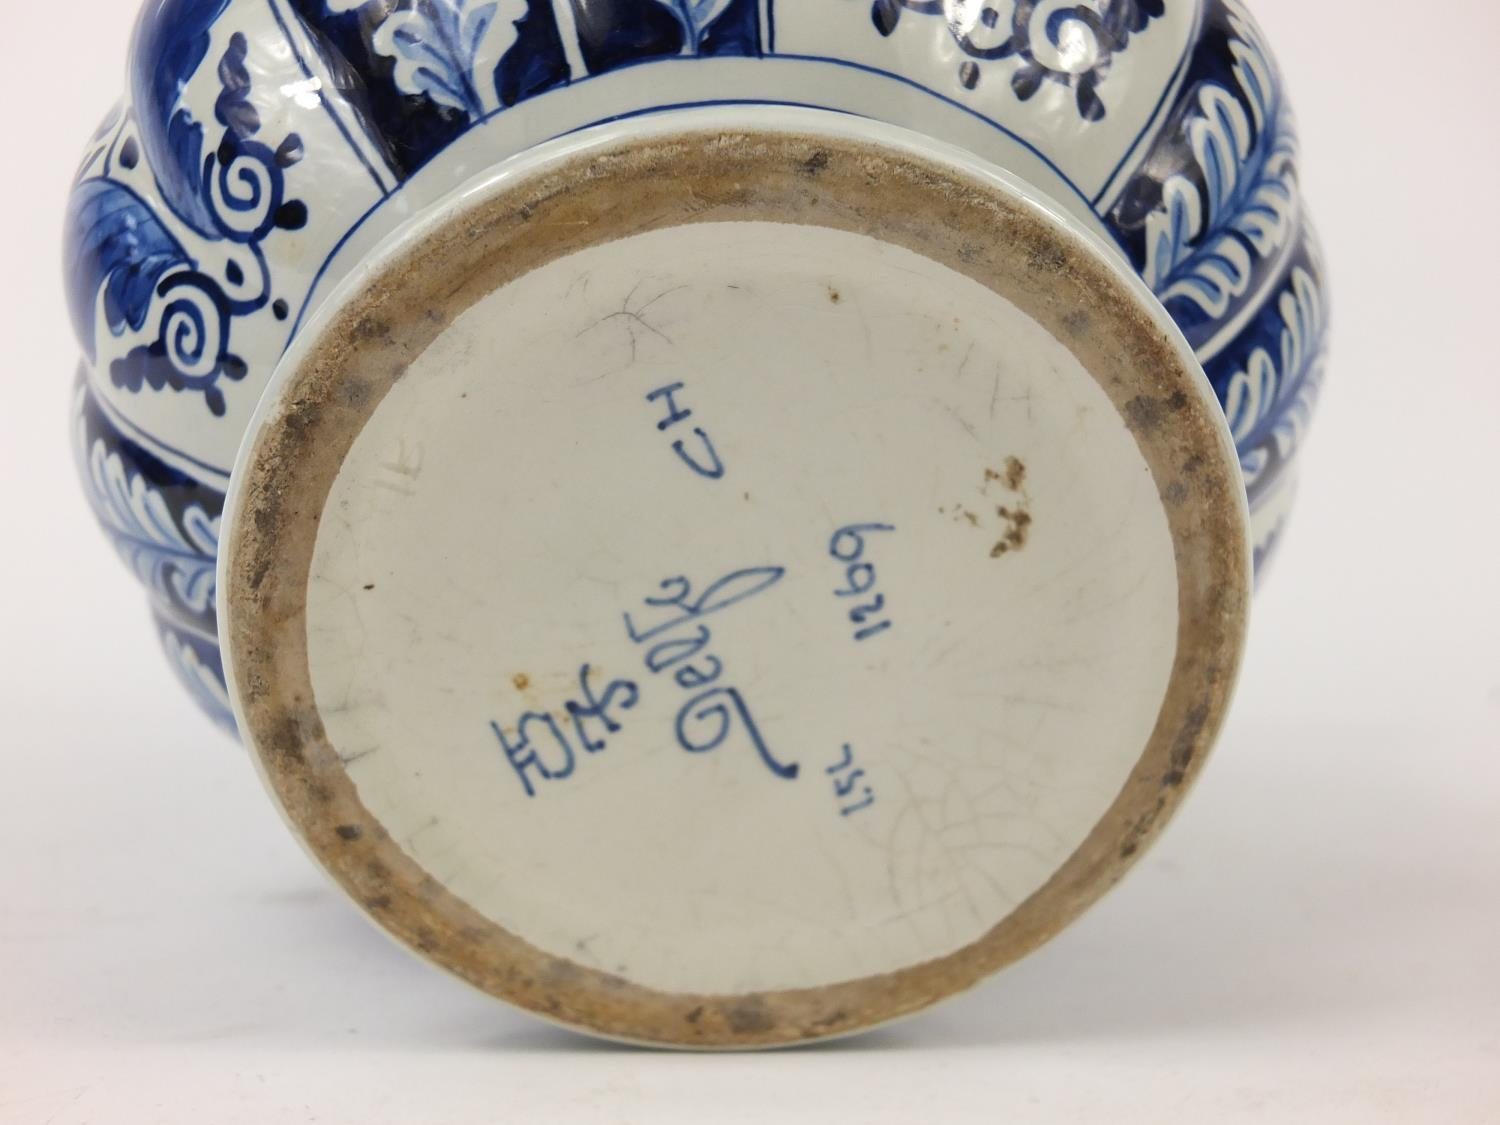 Lot 199 - Hand painted blue and white porcelain vase, 28cm high : For Further Condition Reports Please visit